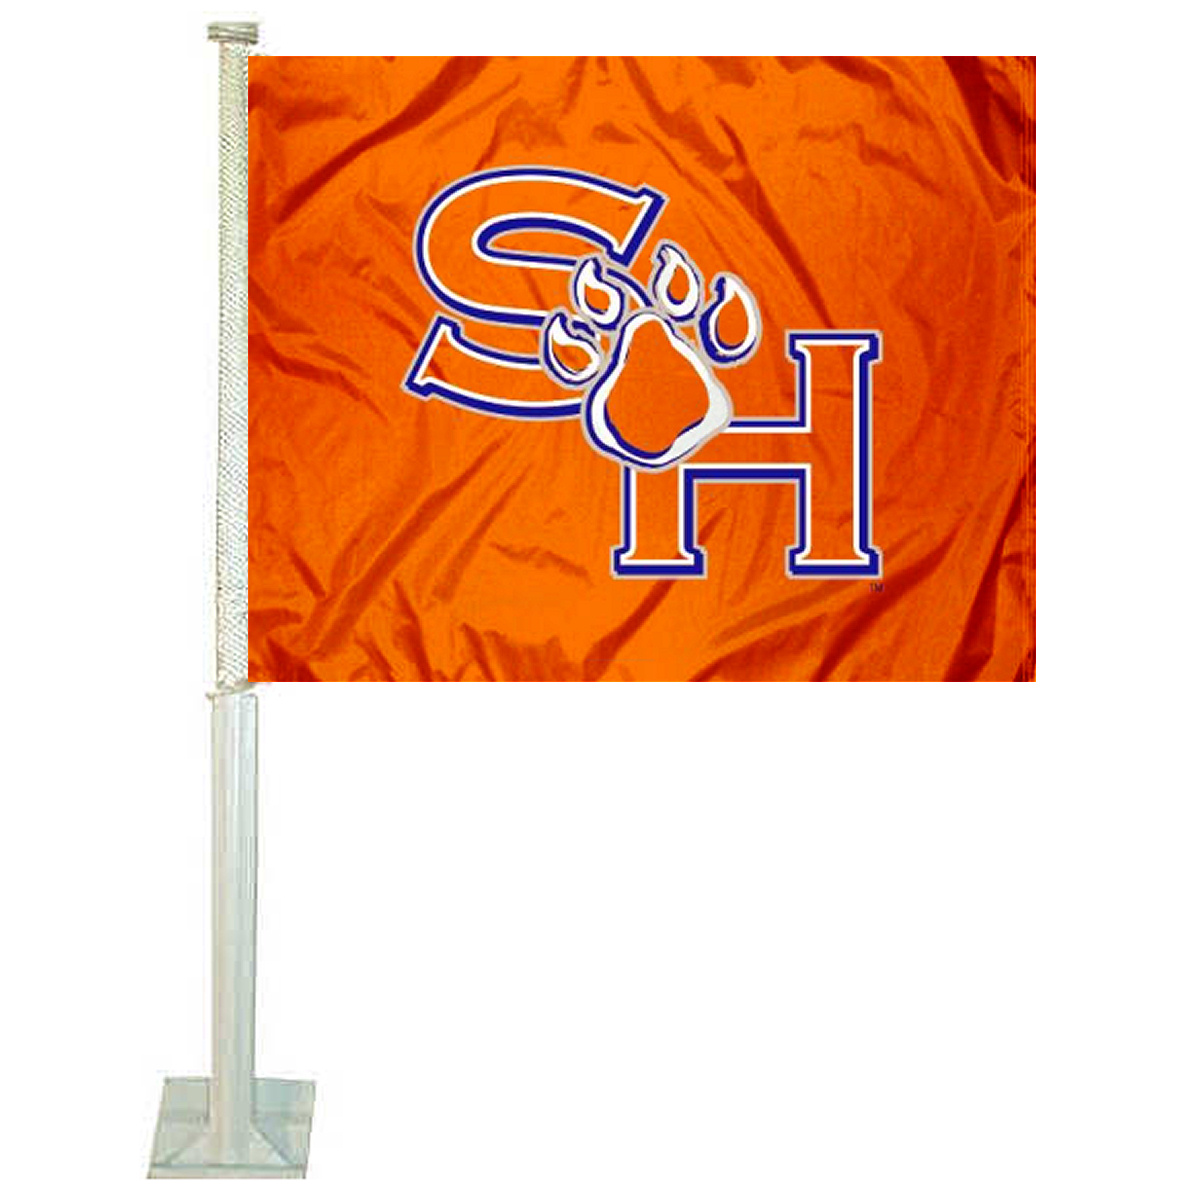 "Sam Houston State University 12"" x 15"" Car Flag"